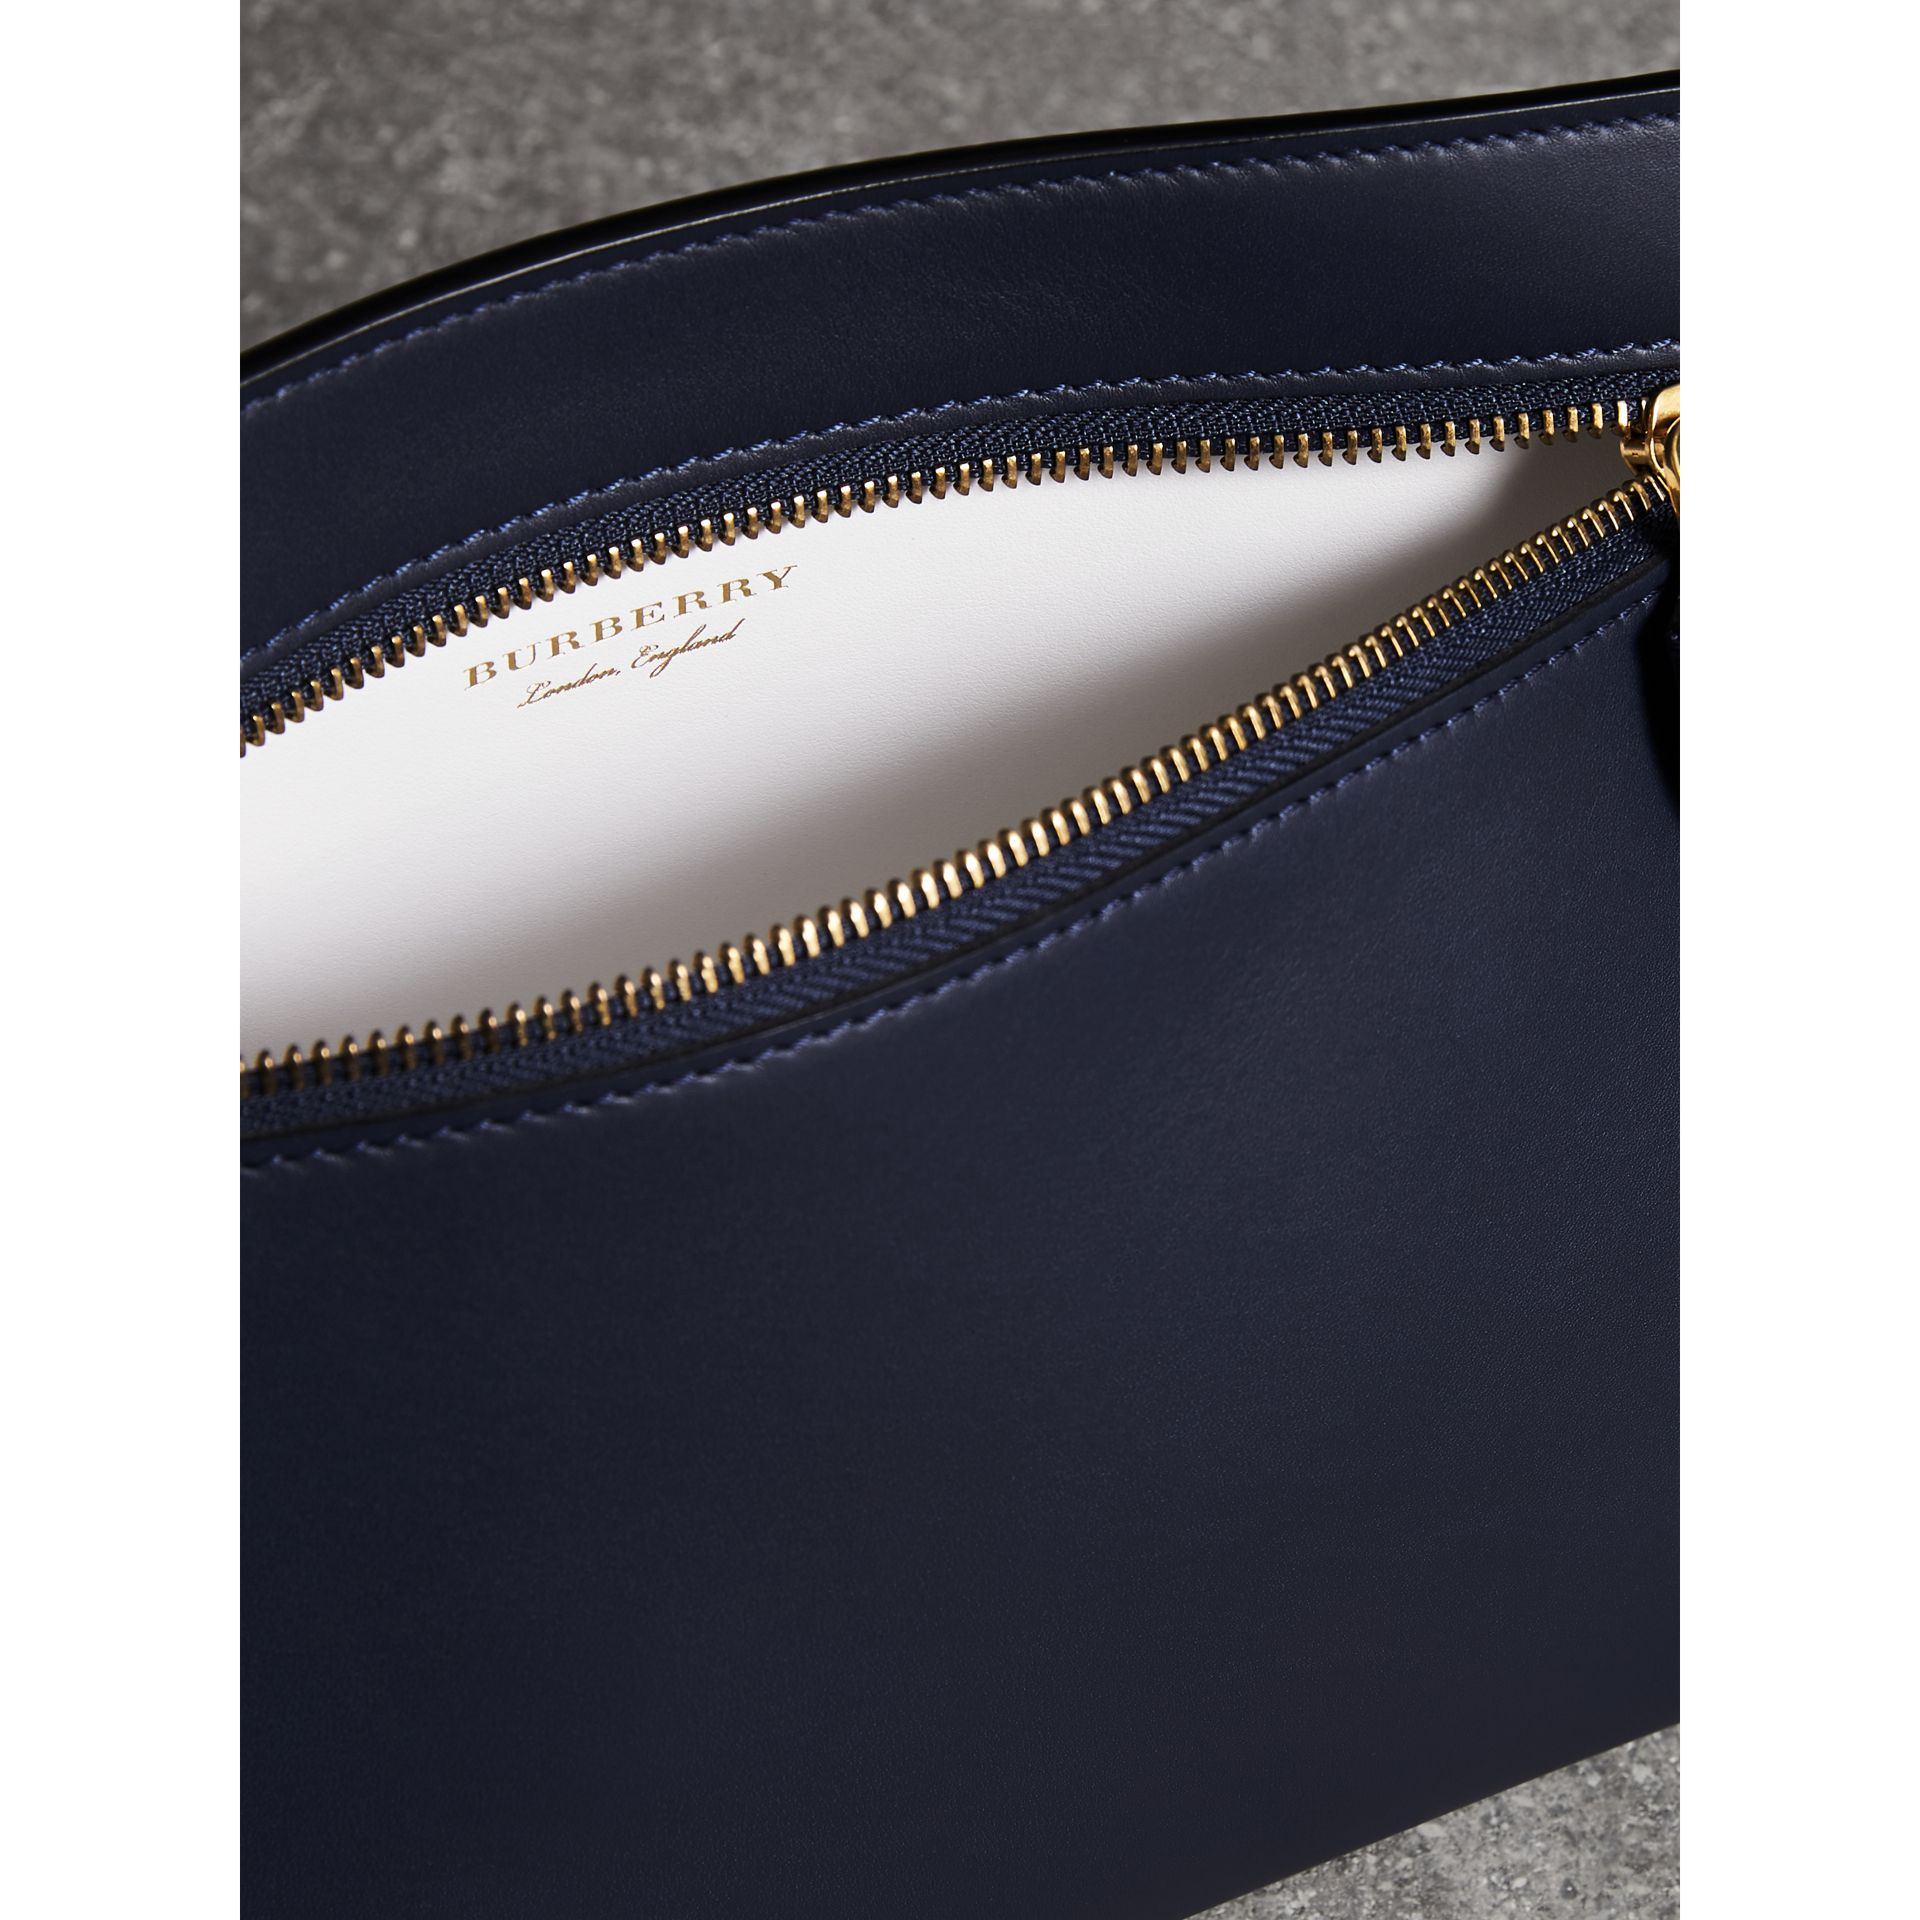 Leather Wristlet Clutch in Mid Indigo - Women | Burberry United States - gallery image 1